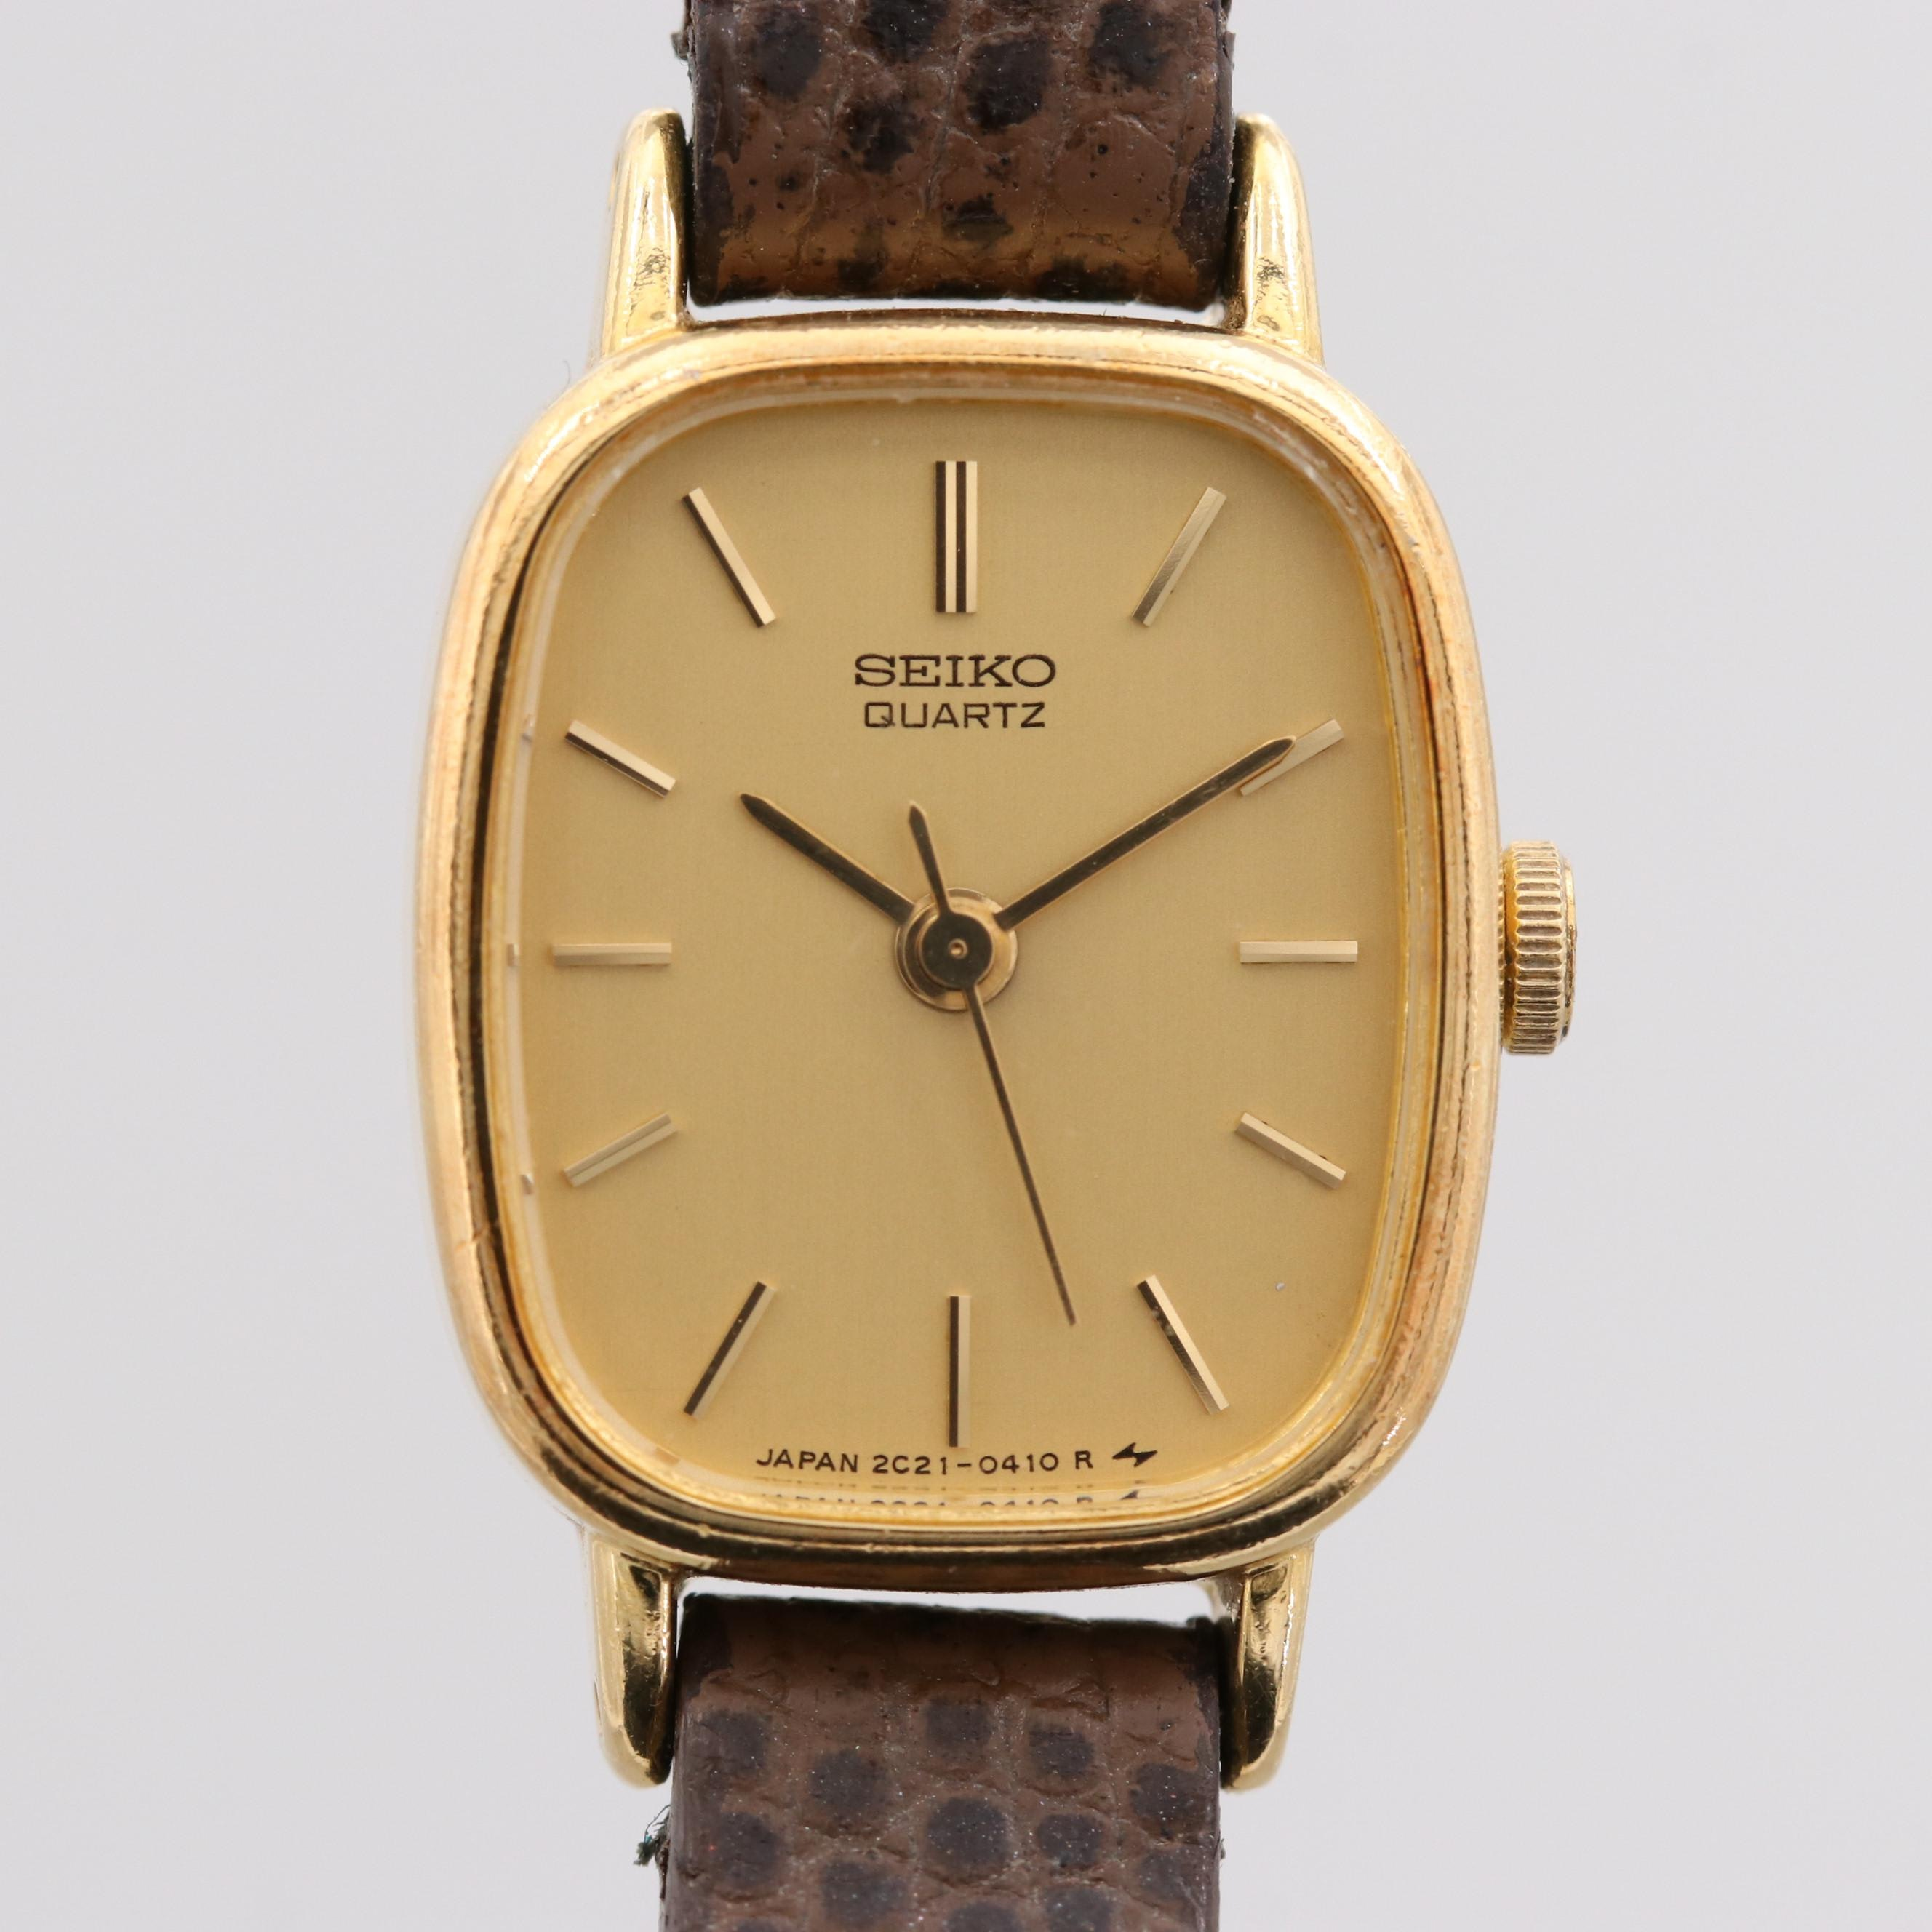 Vintage Seiko Gold Tone Quartz Wristwatch